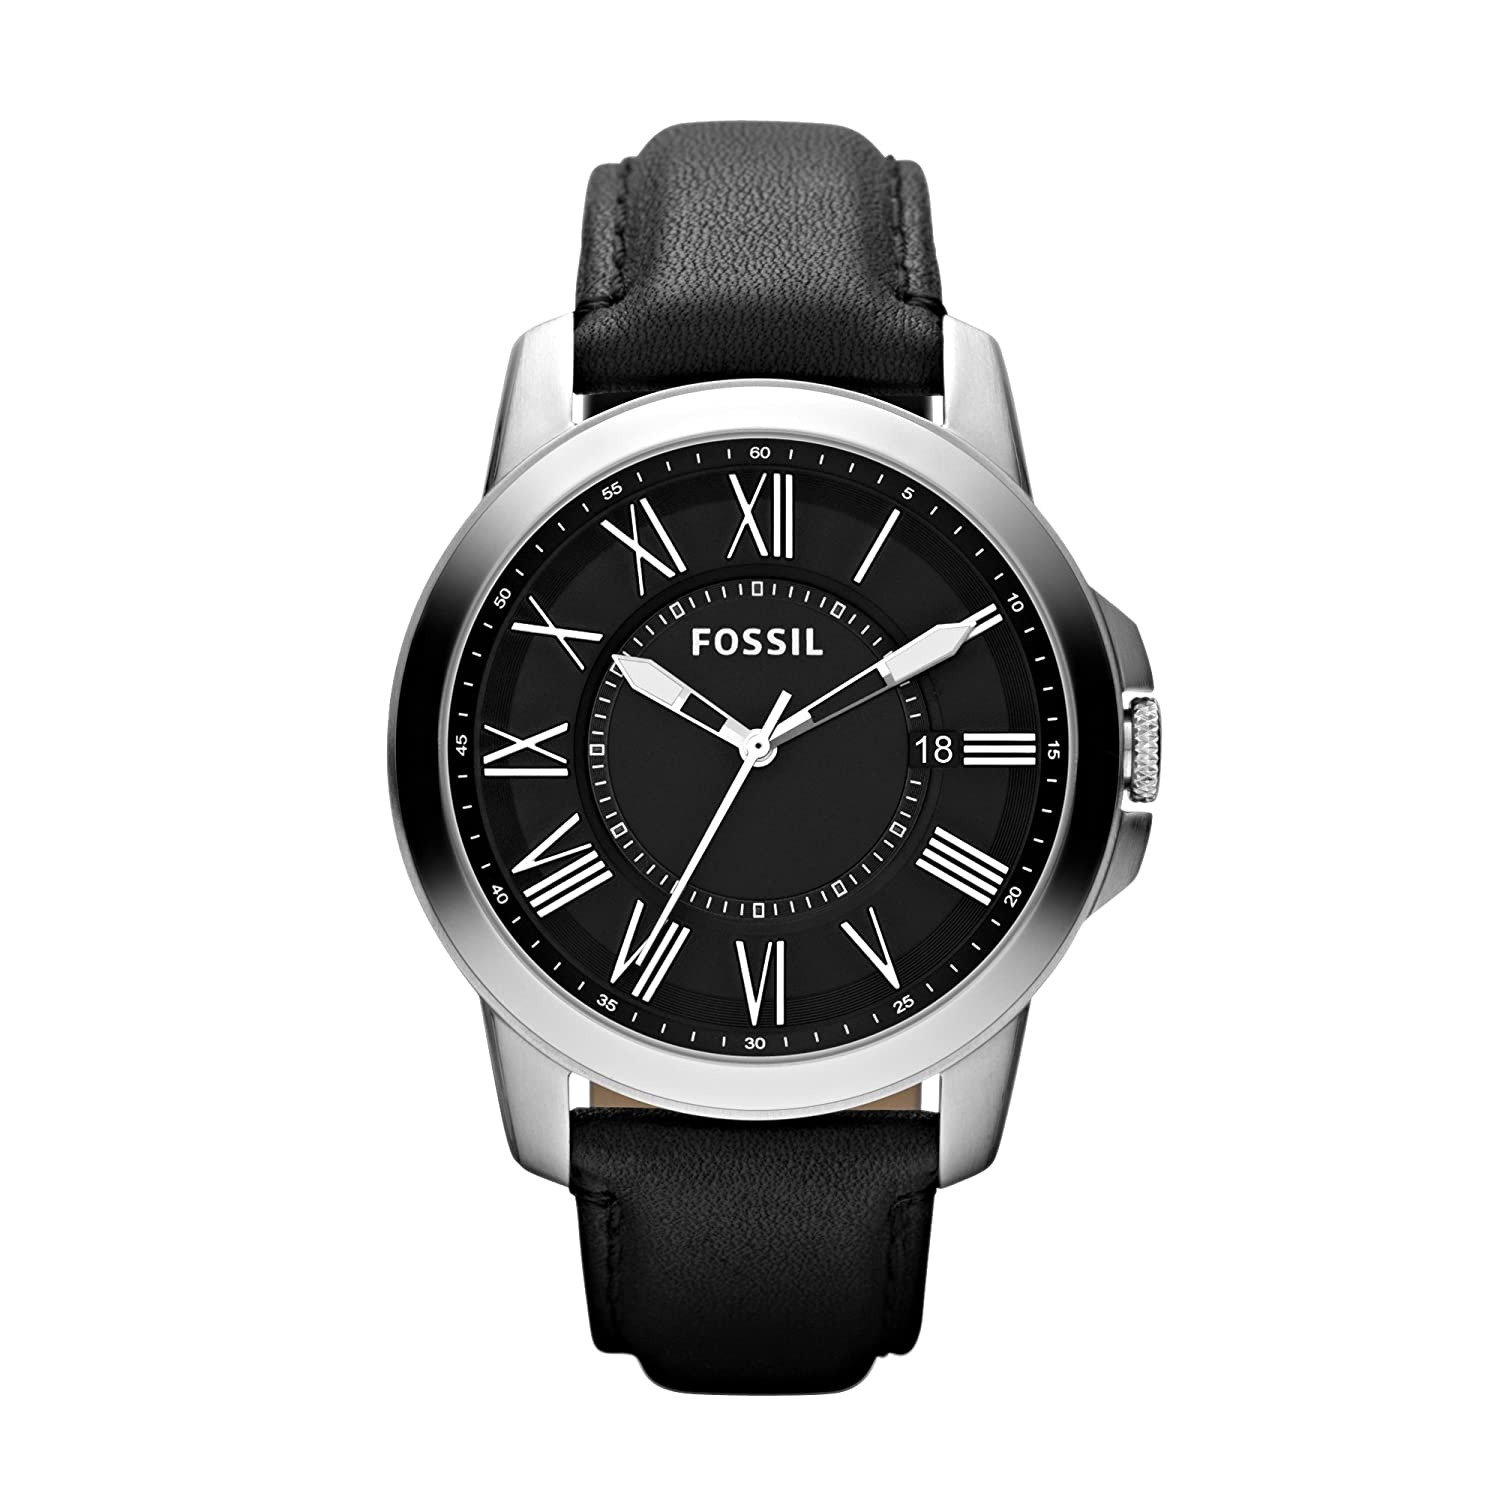 Amazon.com: Fossil Mens FS4745 Grant Analog Display Analog Quartz Black Watch: Fossil: Watches